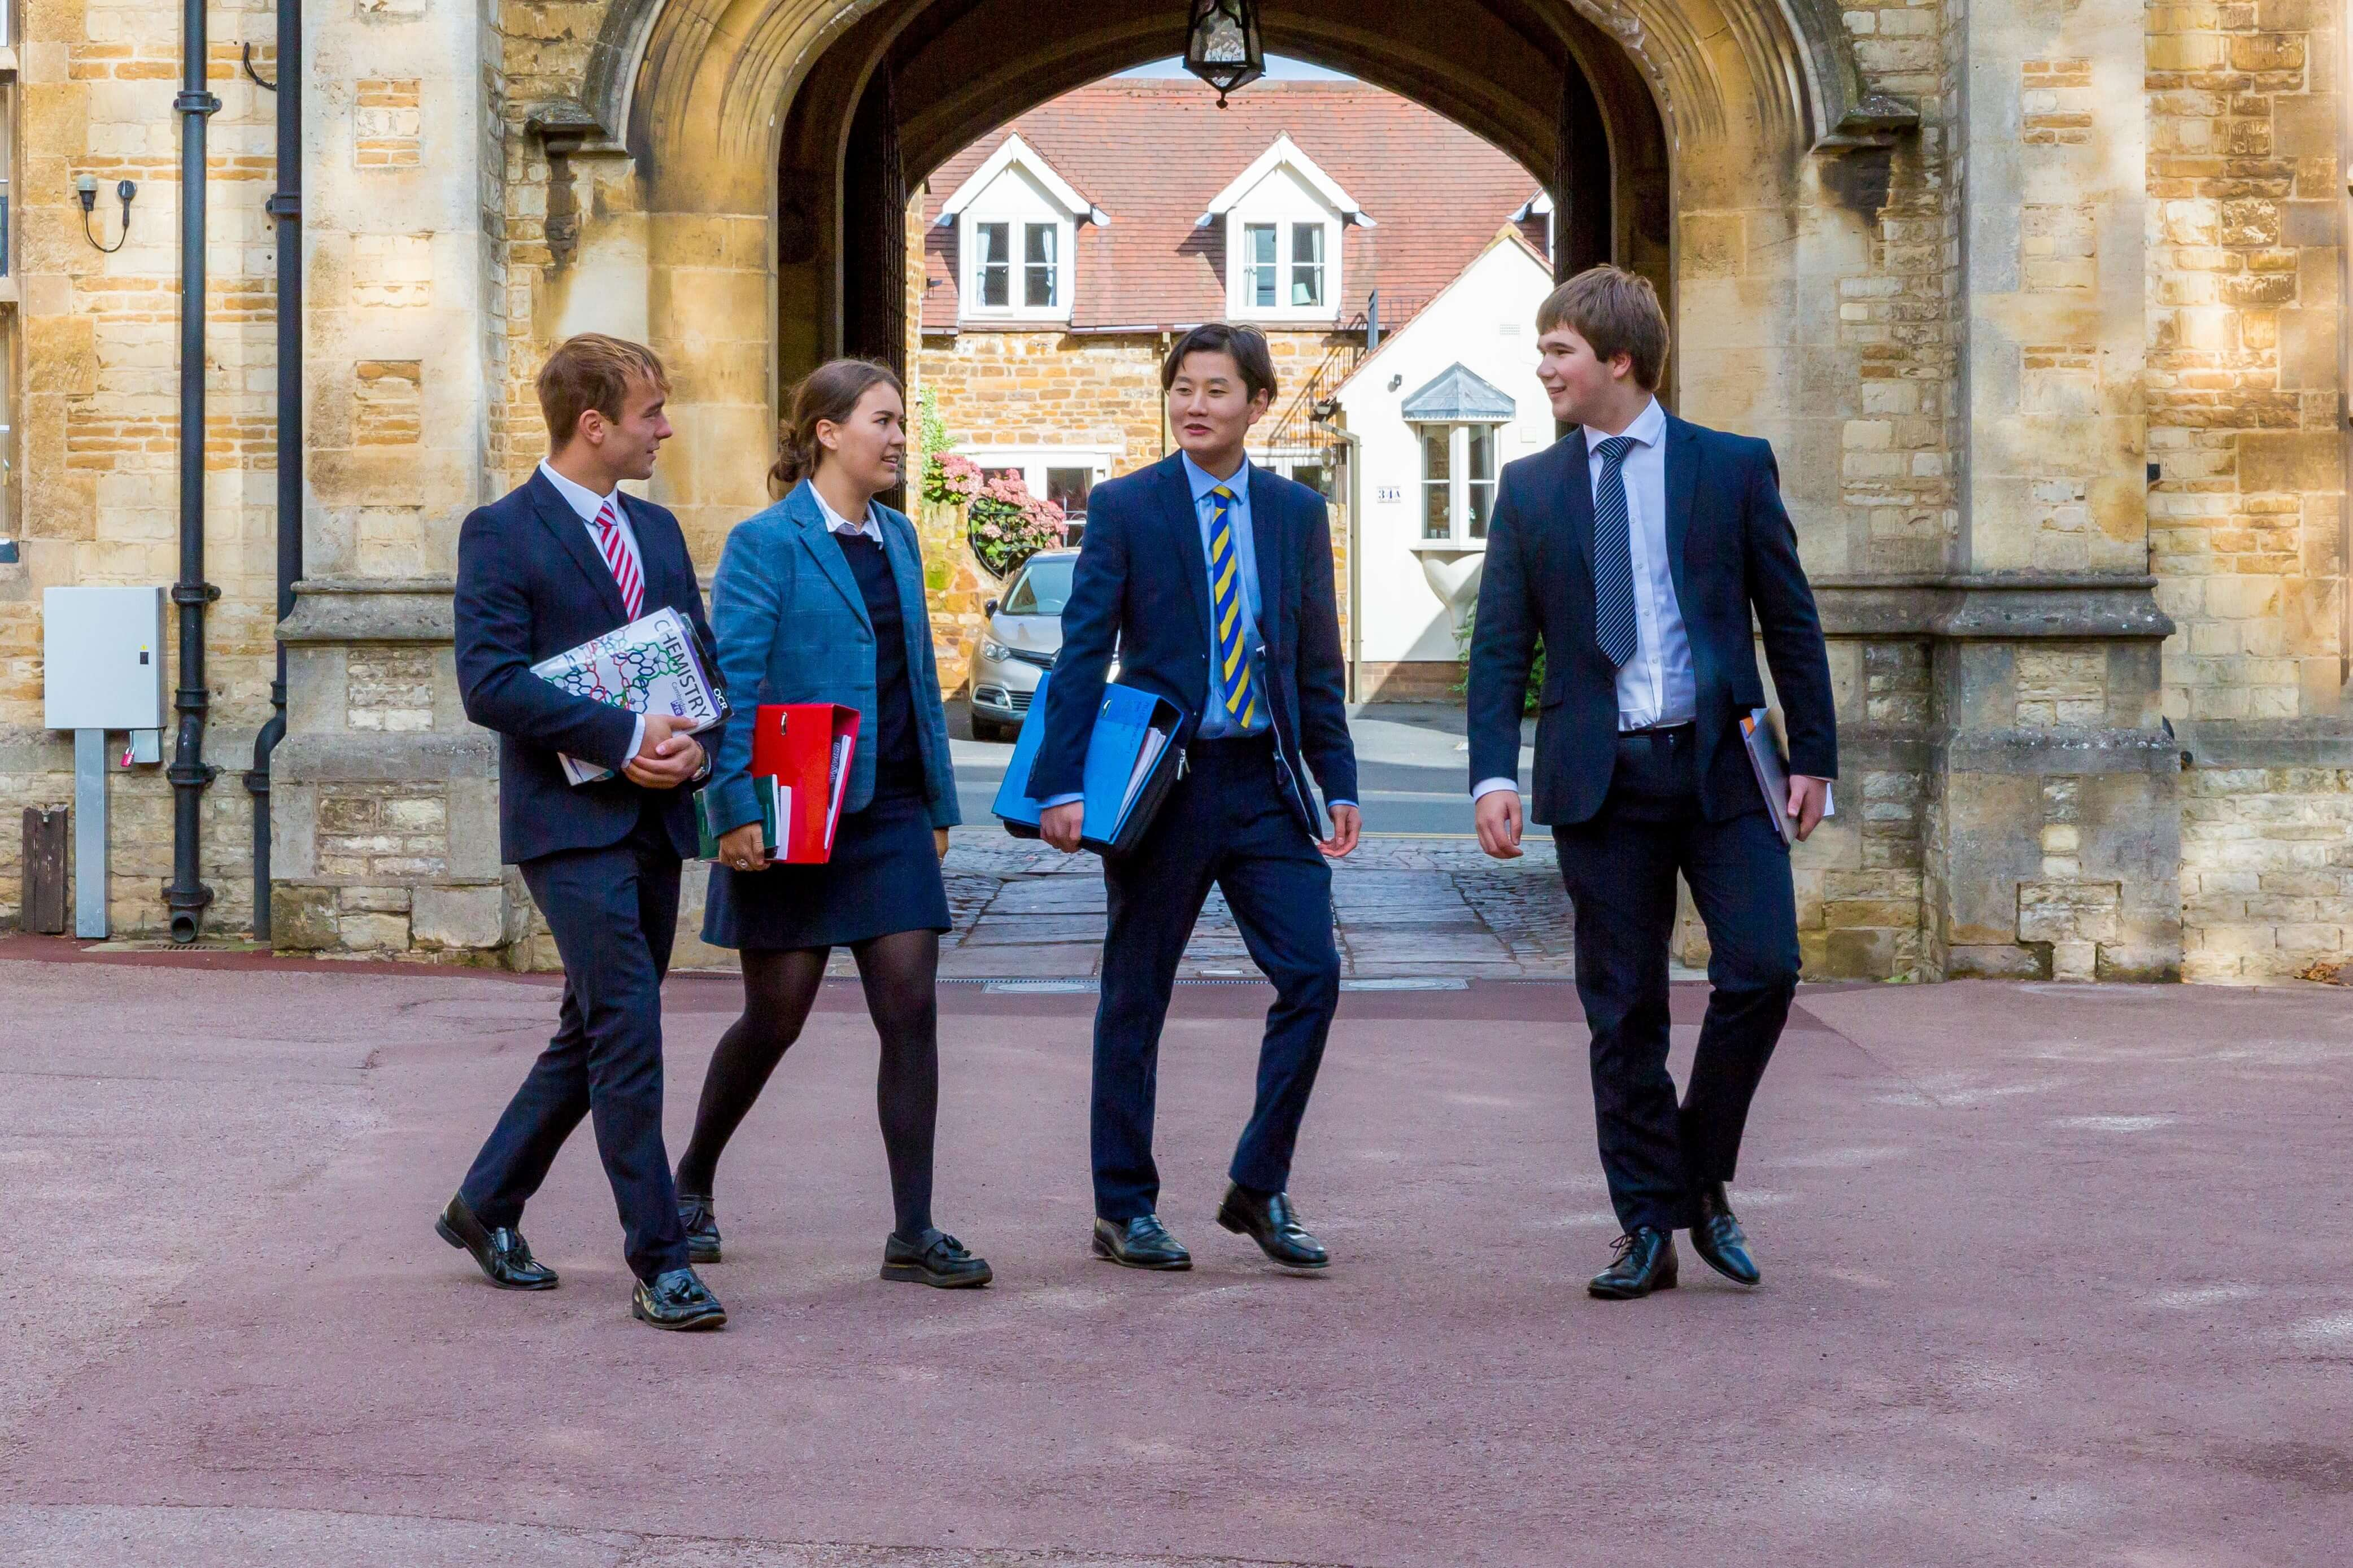 Uppingham: Traditional British boarding with international expertise